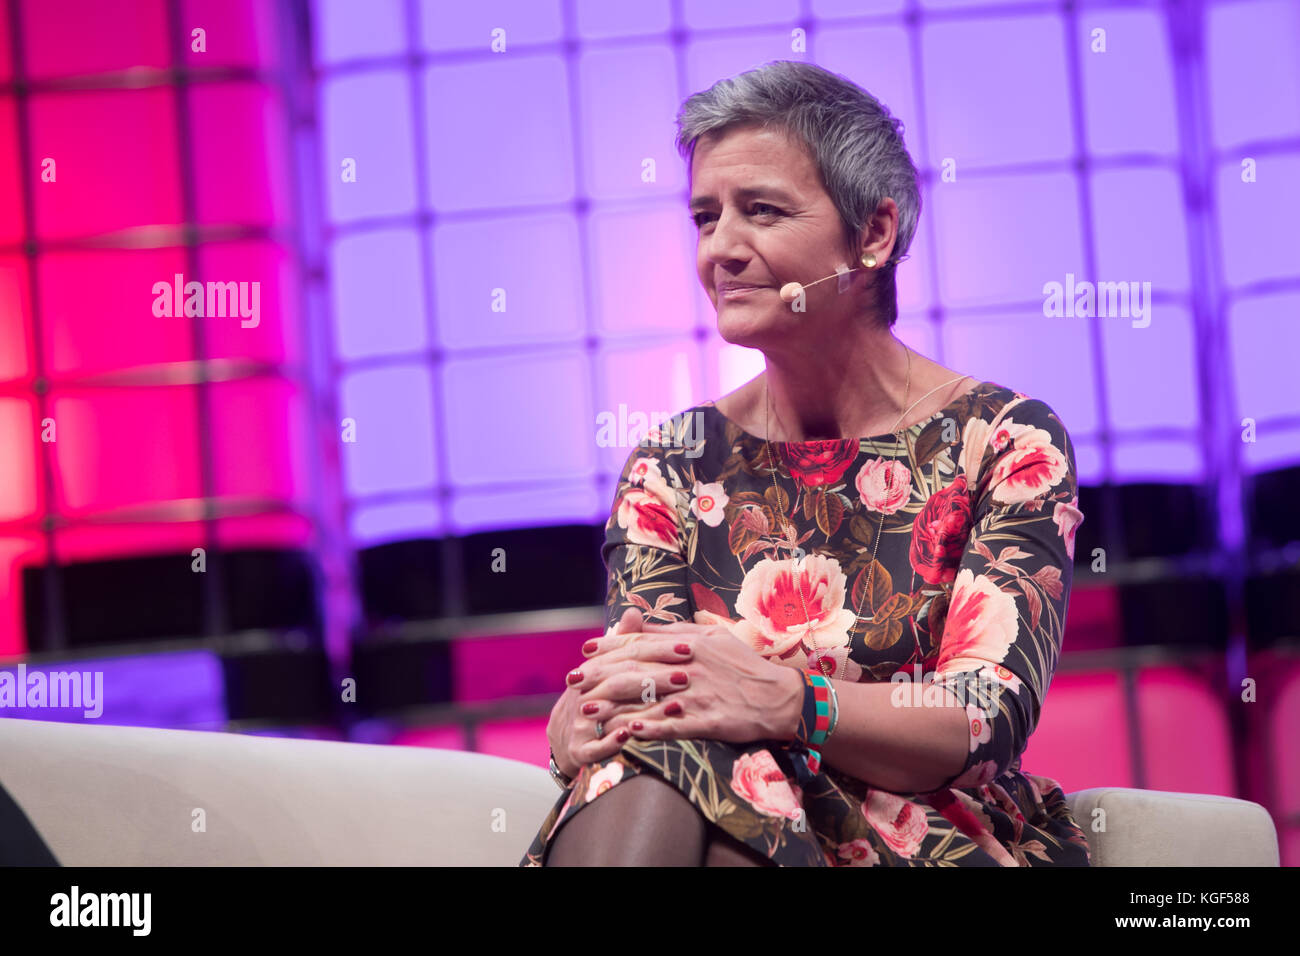 Lisbon, Portugal. 6th Nov, 2017. European Commissioner for Competition Margrethe Vestager at the Web Summit Opening - Stock Image